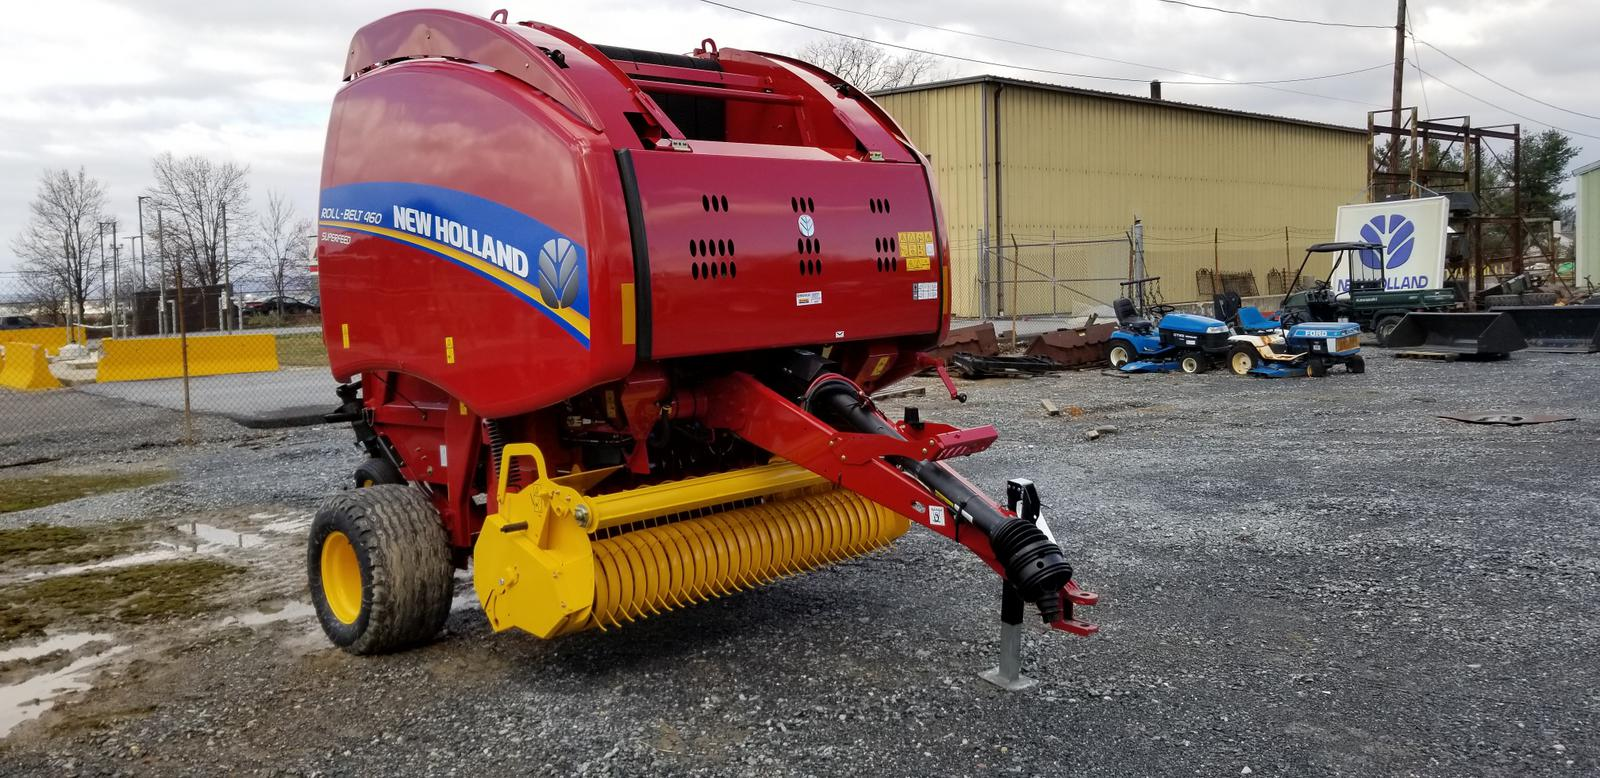 Inventory Ceresville New Holland, Inc  Frederick, MD (800) 331-9122